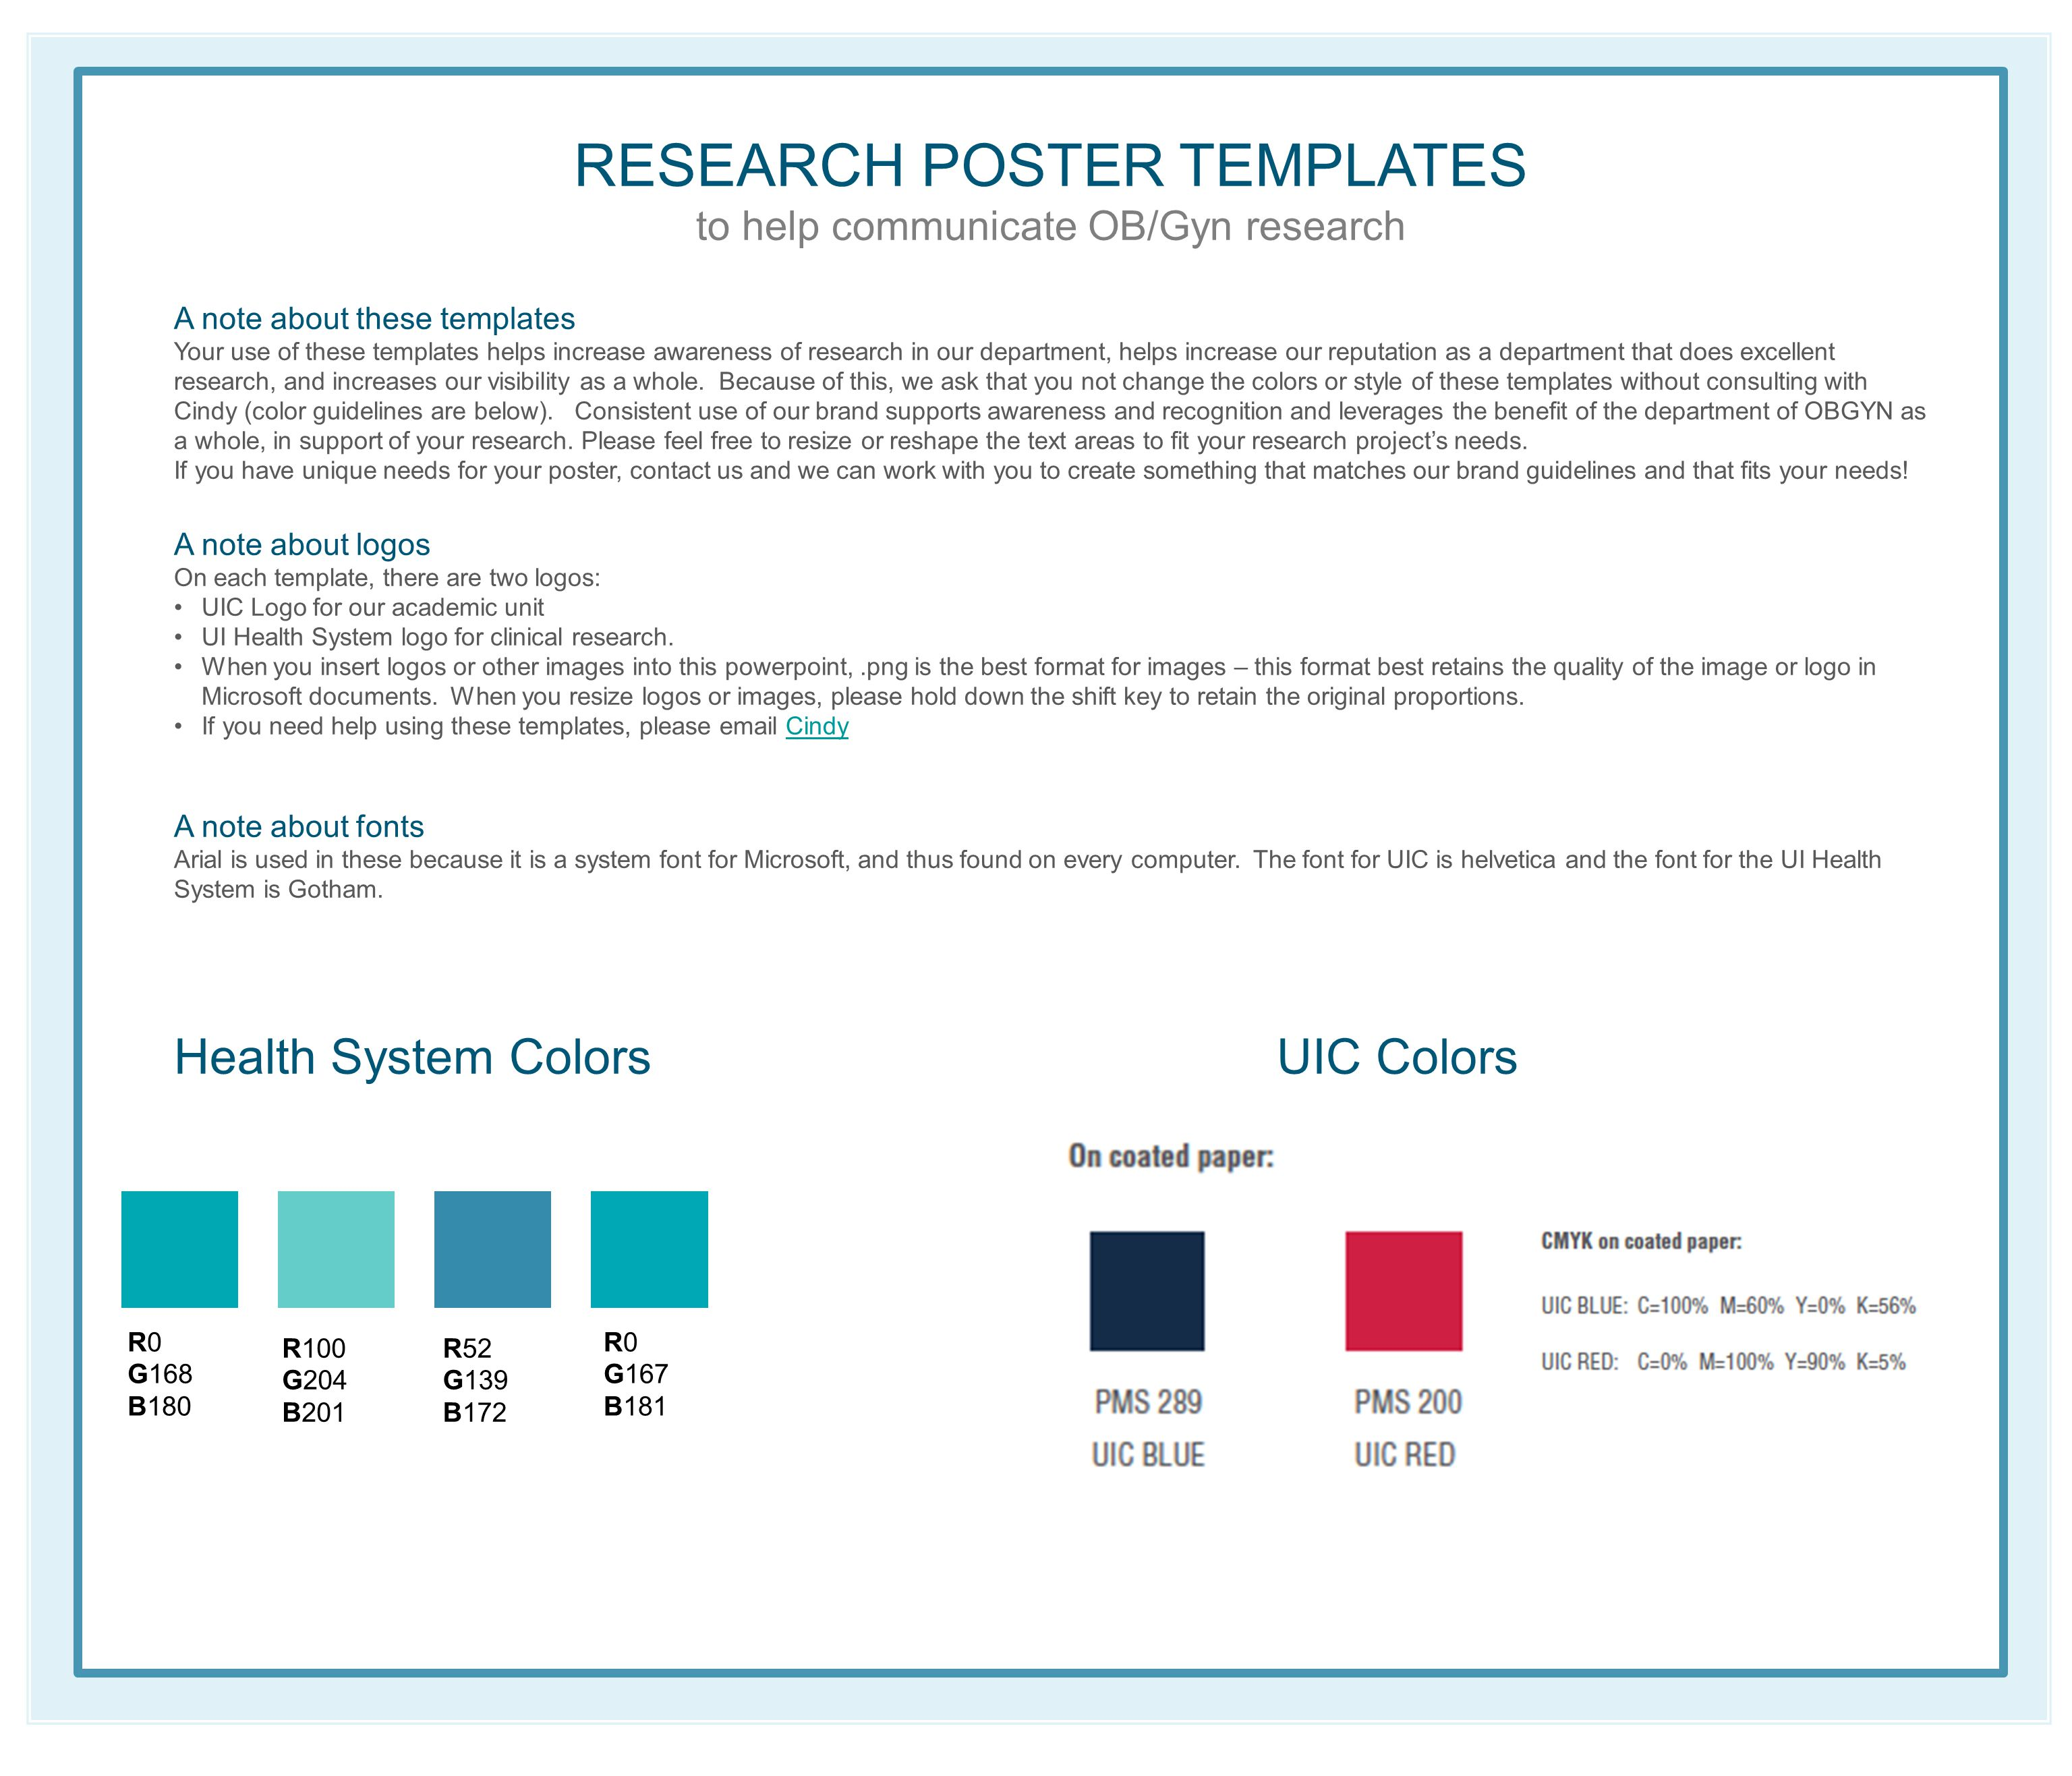 RESEARCH POSTER TEMPLATES to help communicate OB/Gyn research A note about these templates Your use of these templates helps increase awareness of research in our department, helps increase our reputation as a department that does excellent research, and increases our visibility as a whole.